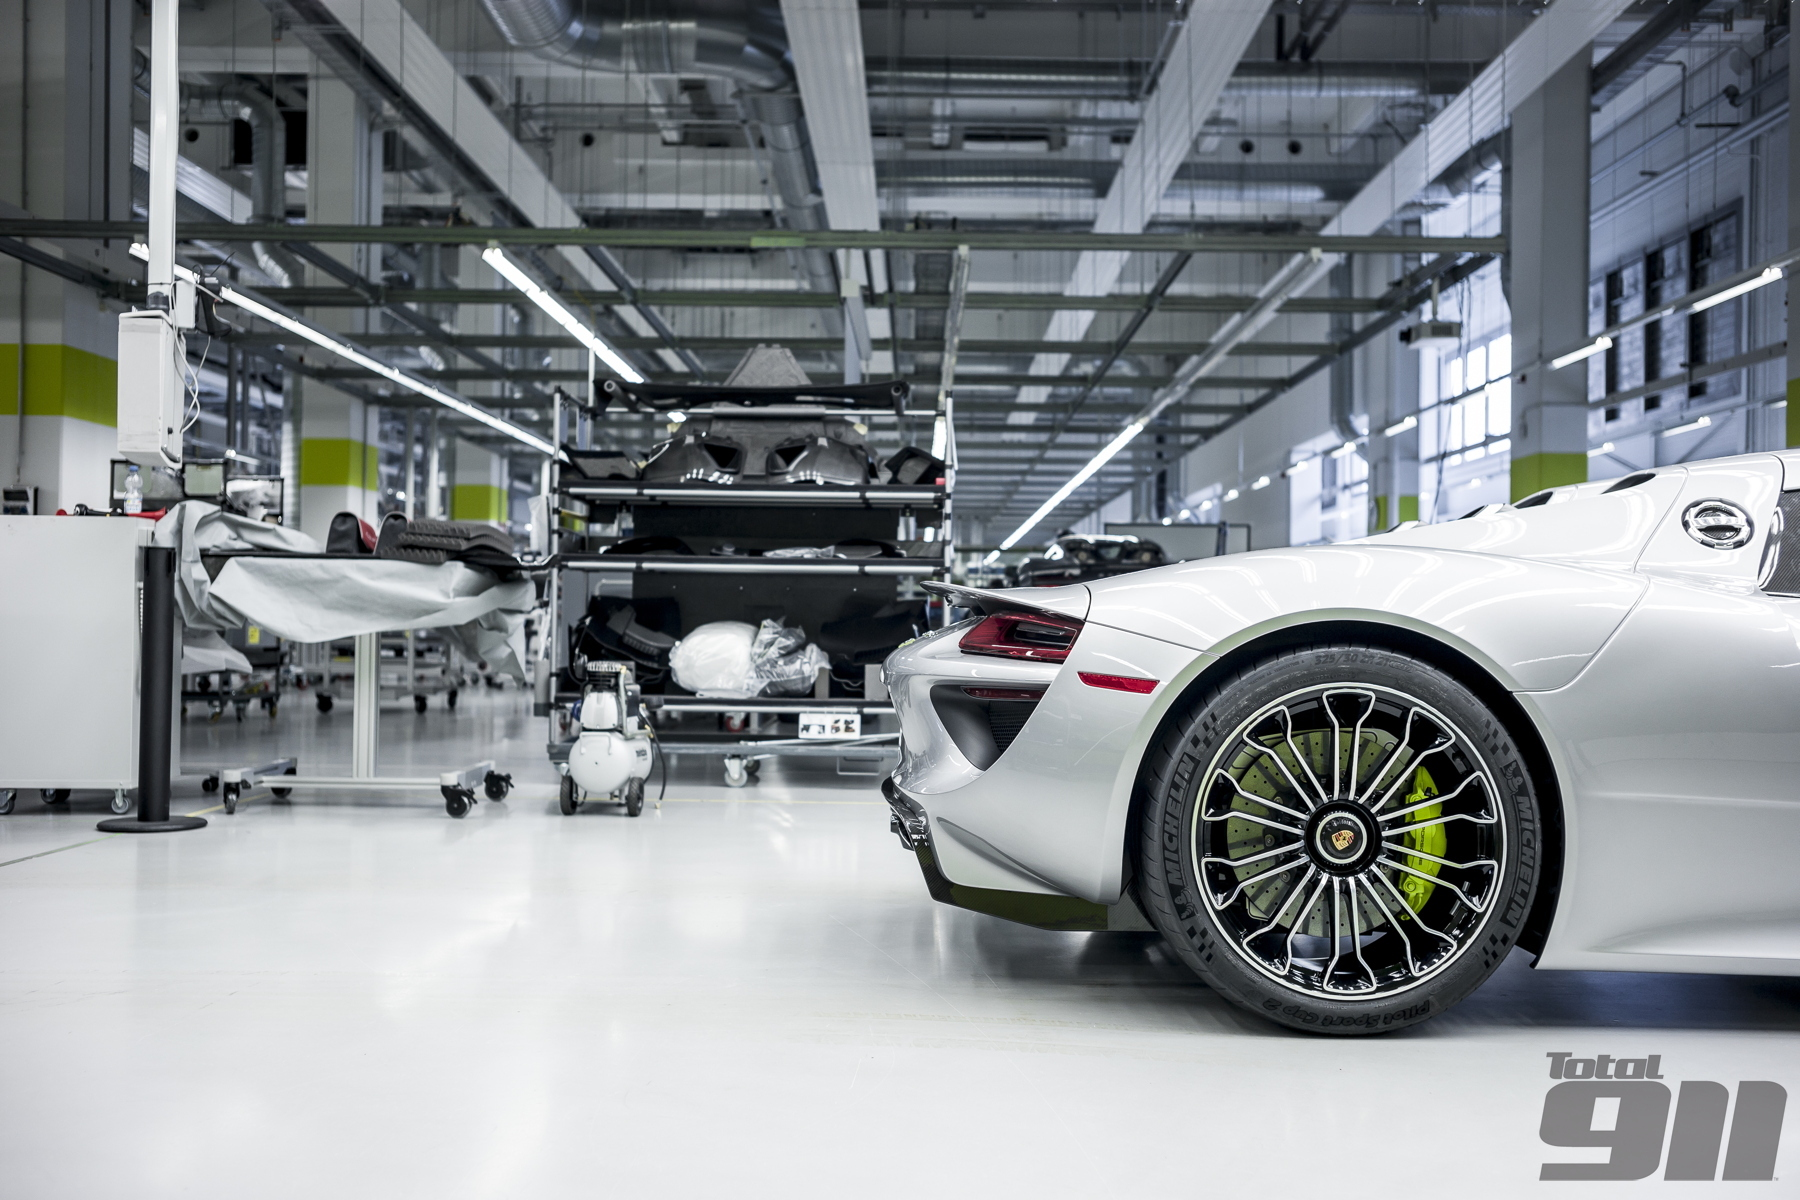 automotive industry and porsche production line The digitalization helps the automotive industry to from product design to production merging the real and virtual world in automotive manufacturing.